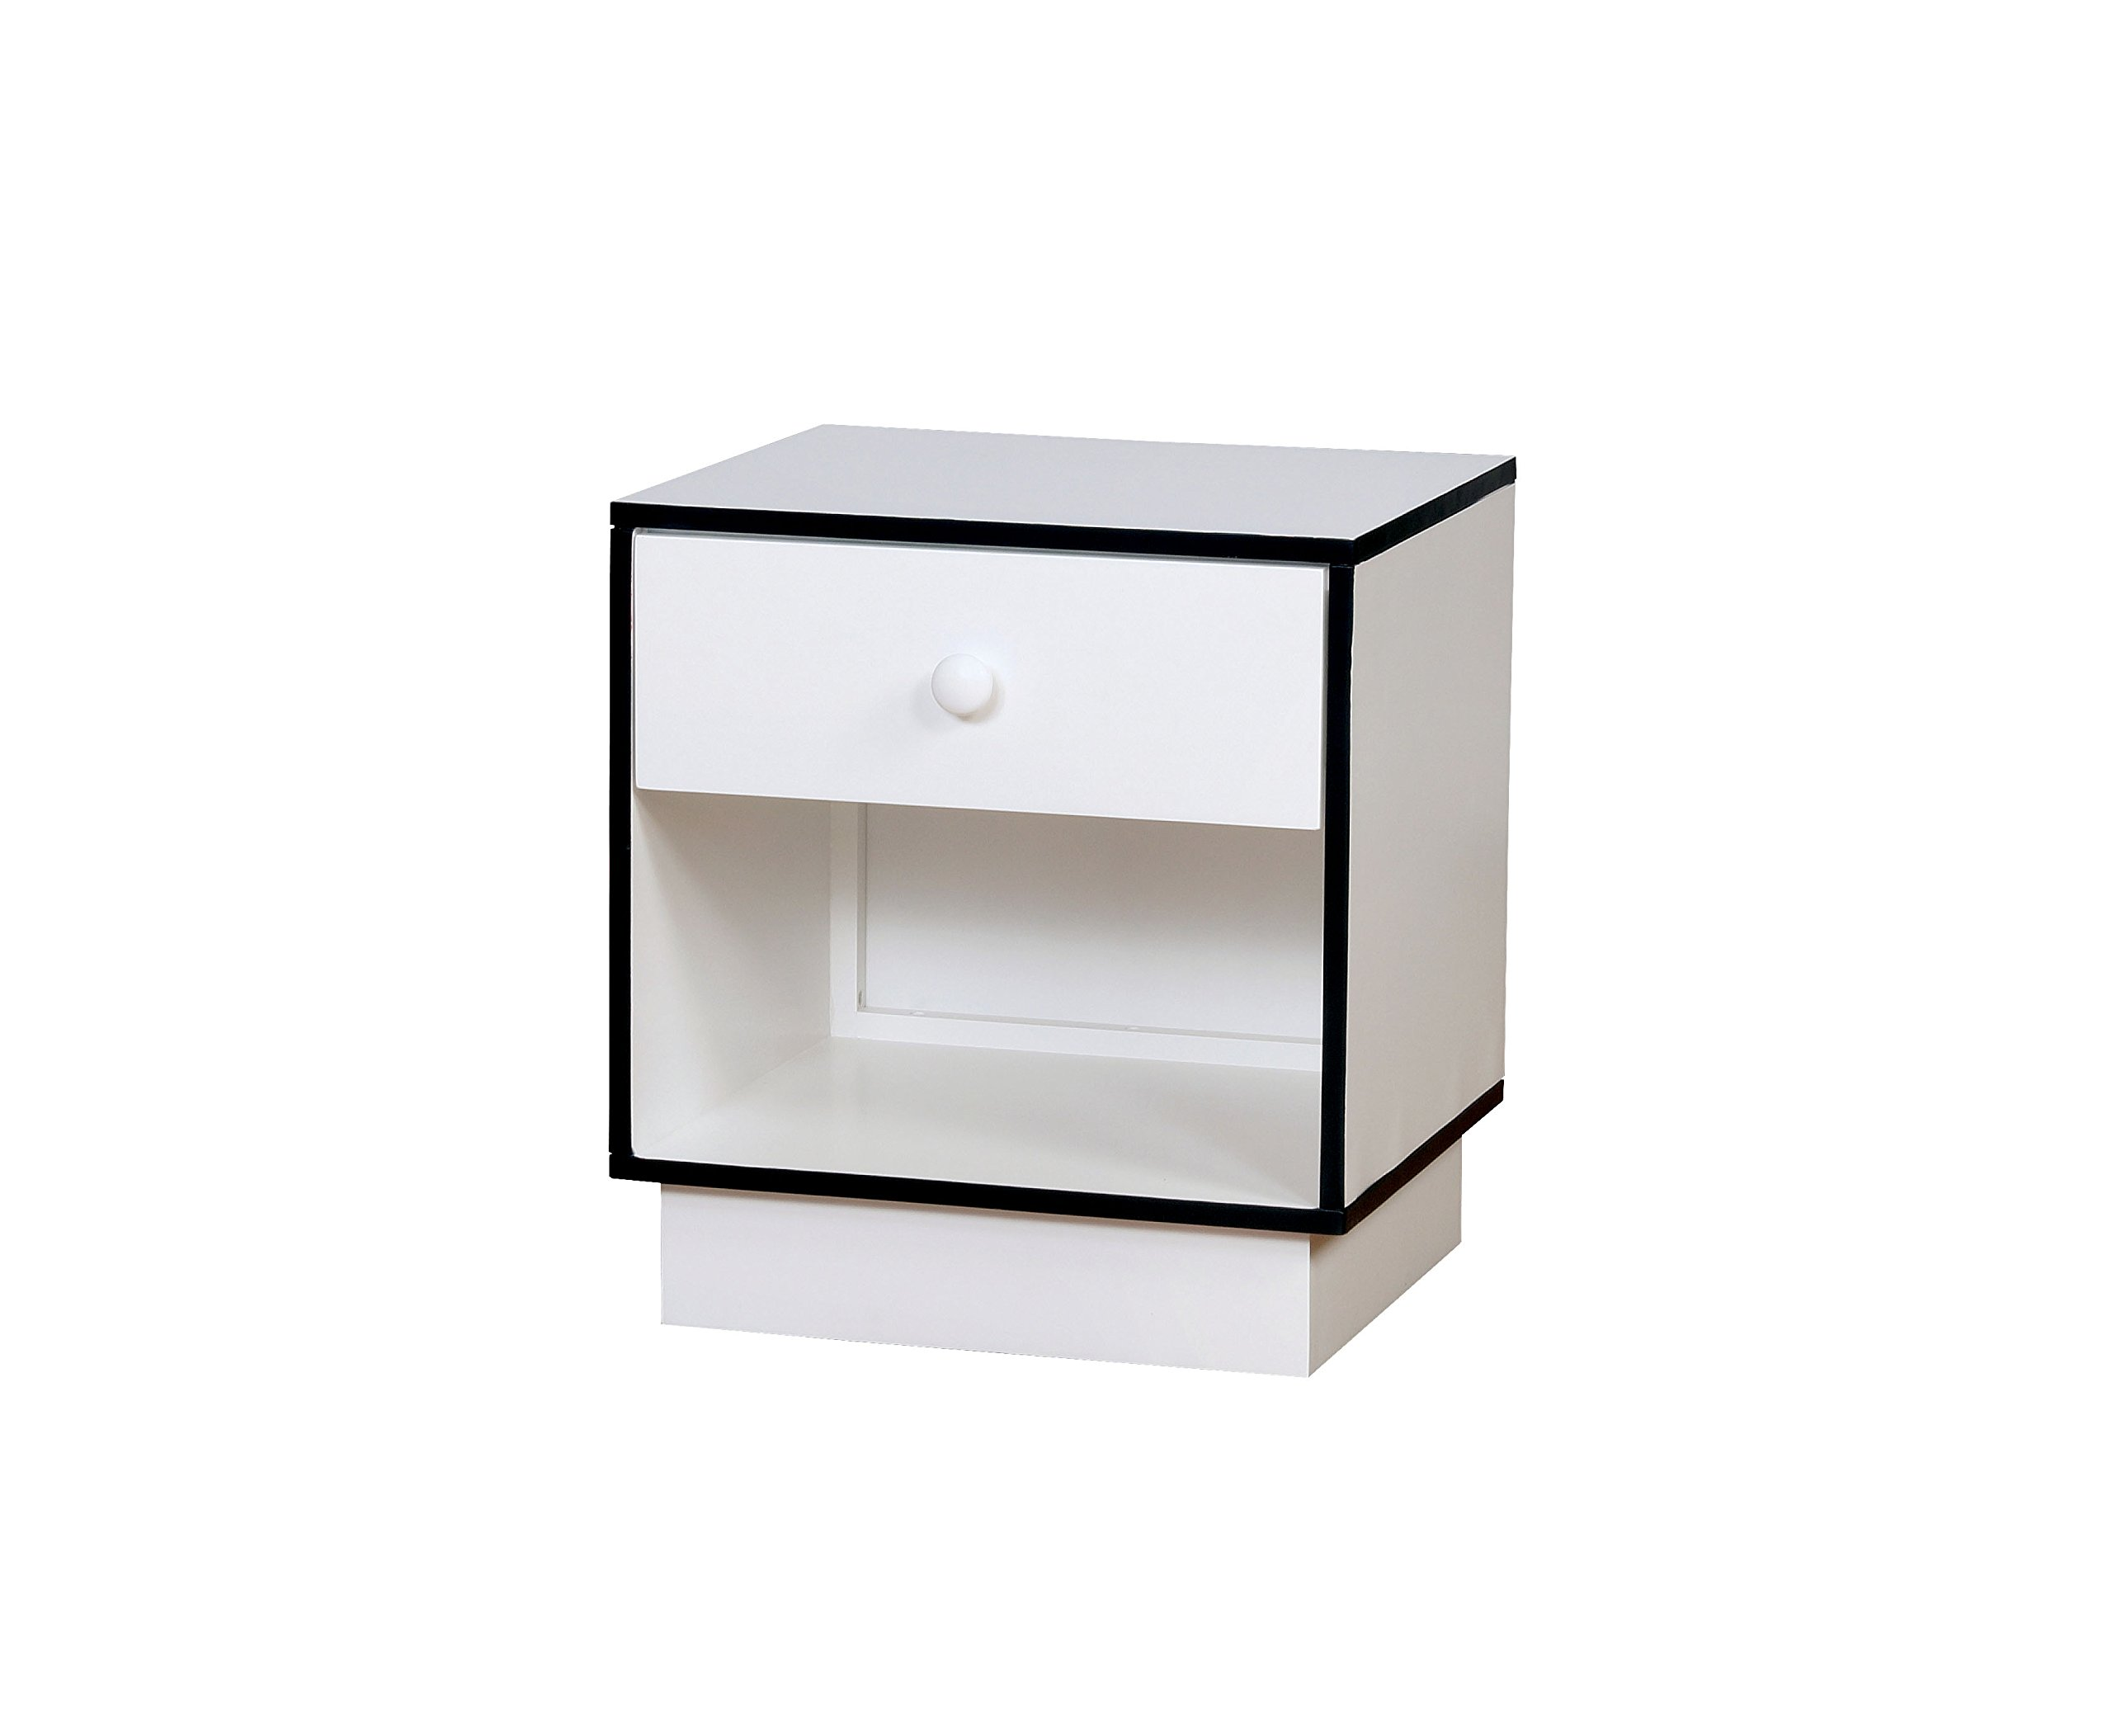 HOMES: Inside + Out IDF-7852BL-N Wexler Nightstand Childrens, Blue/White